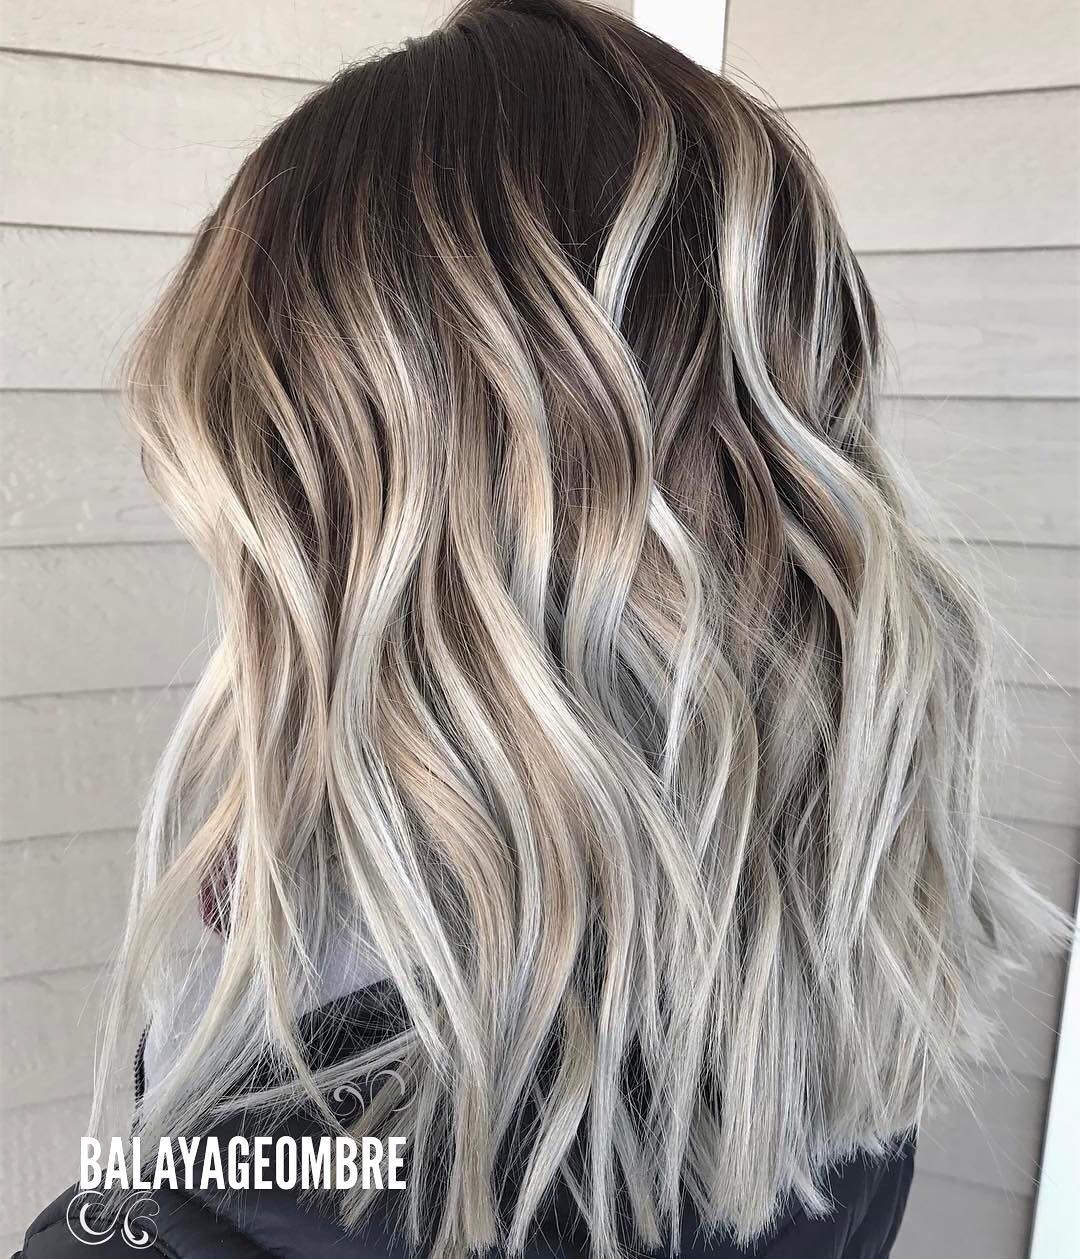 10 Best Medium Layered Hairstyles 2020 Brown Ash Blonde